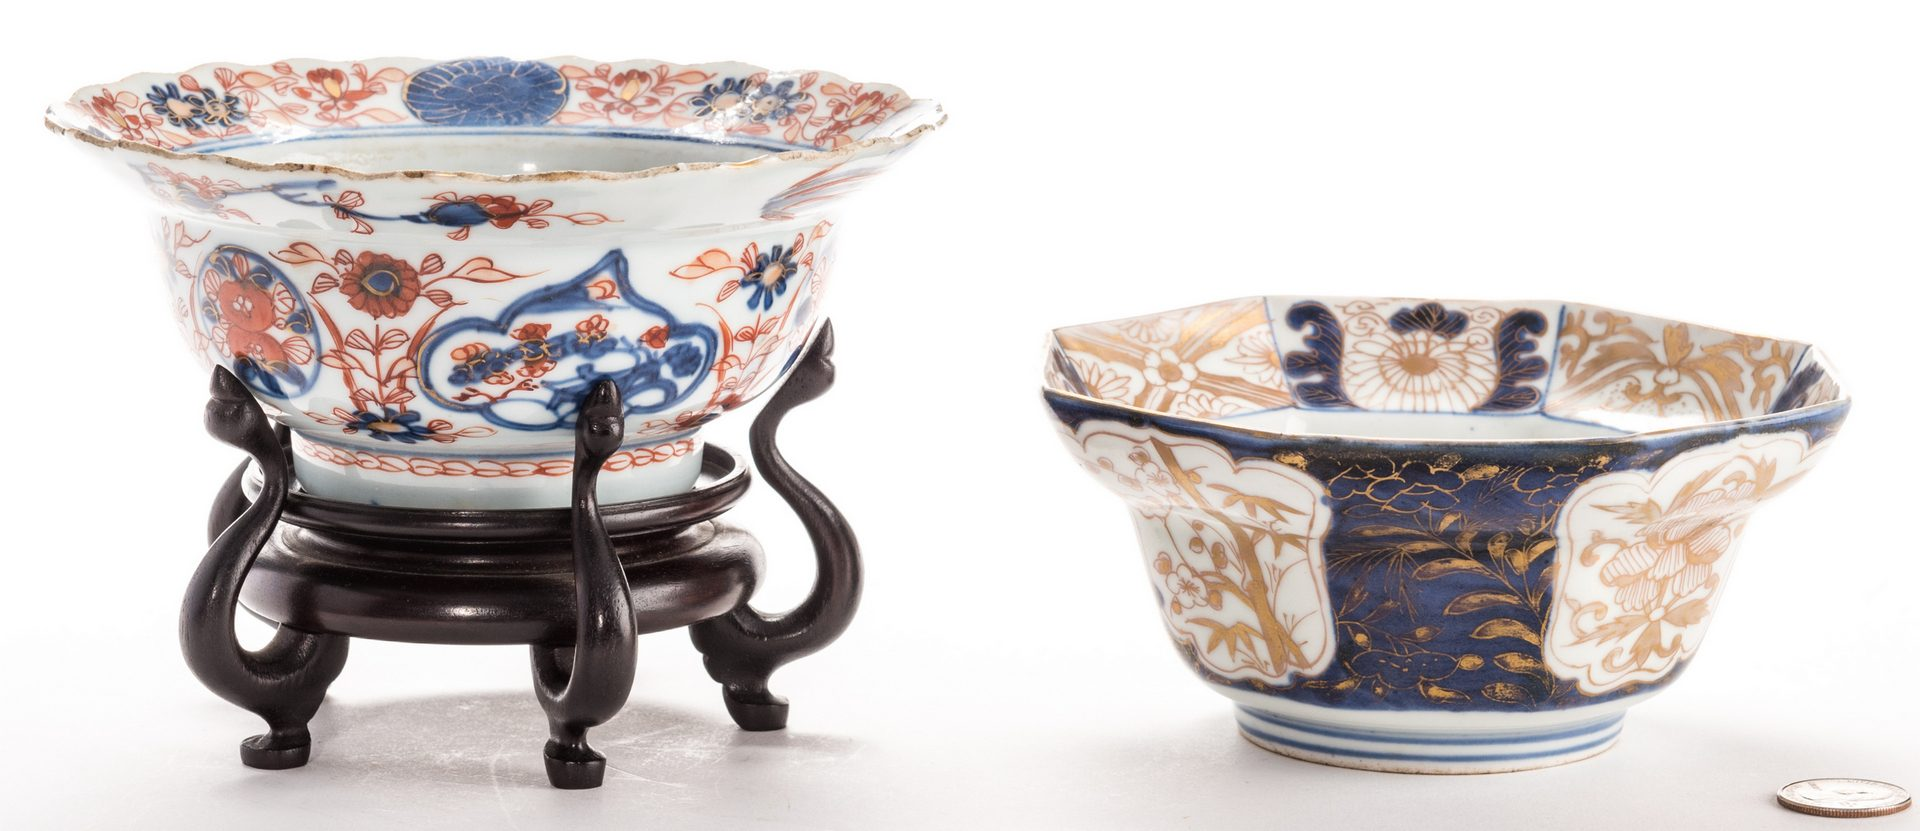 Lot 319: Two Small Asian Porcelain Bowls, 18th c.